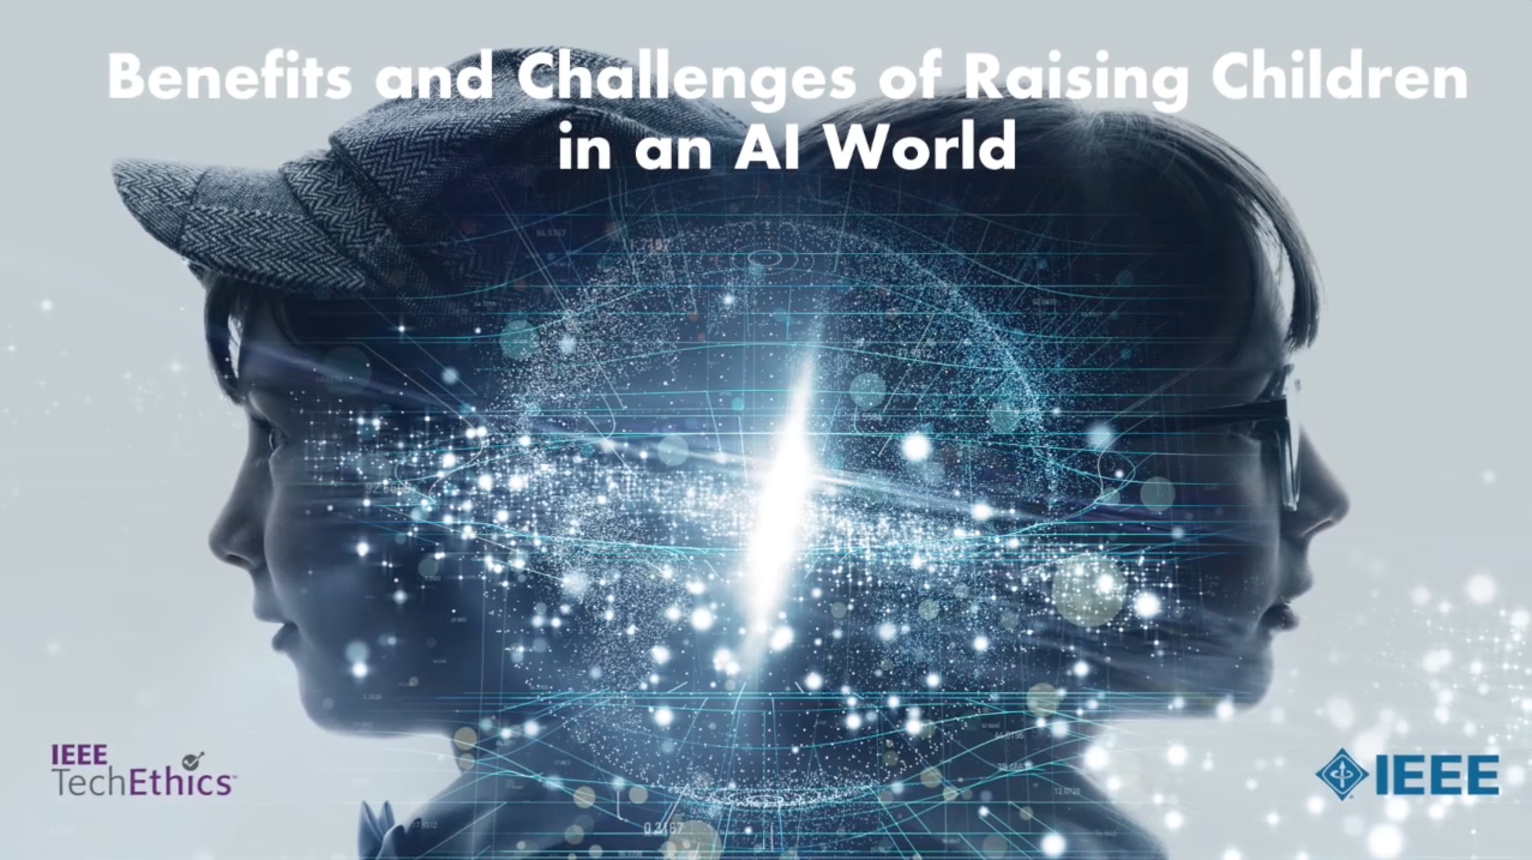 Benefits and Challenges of Raising Children in an AI World: IEEE TechEthics Virtual Panel